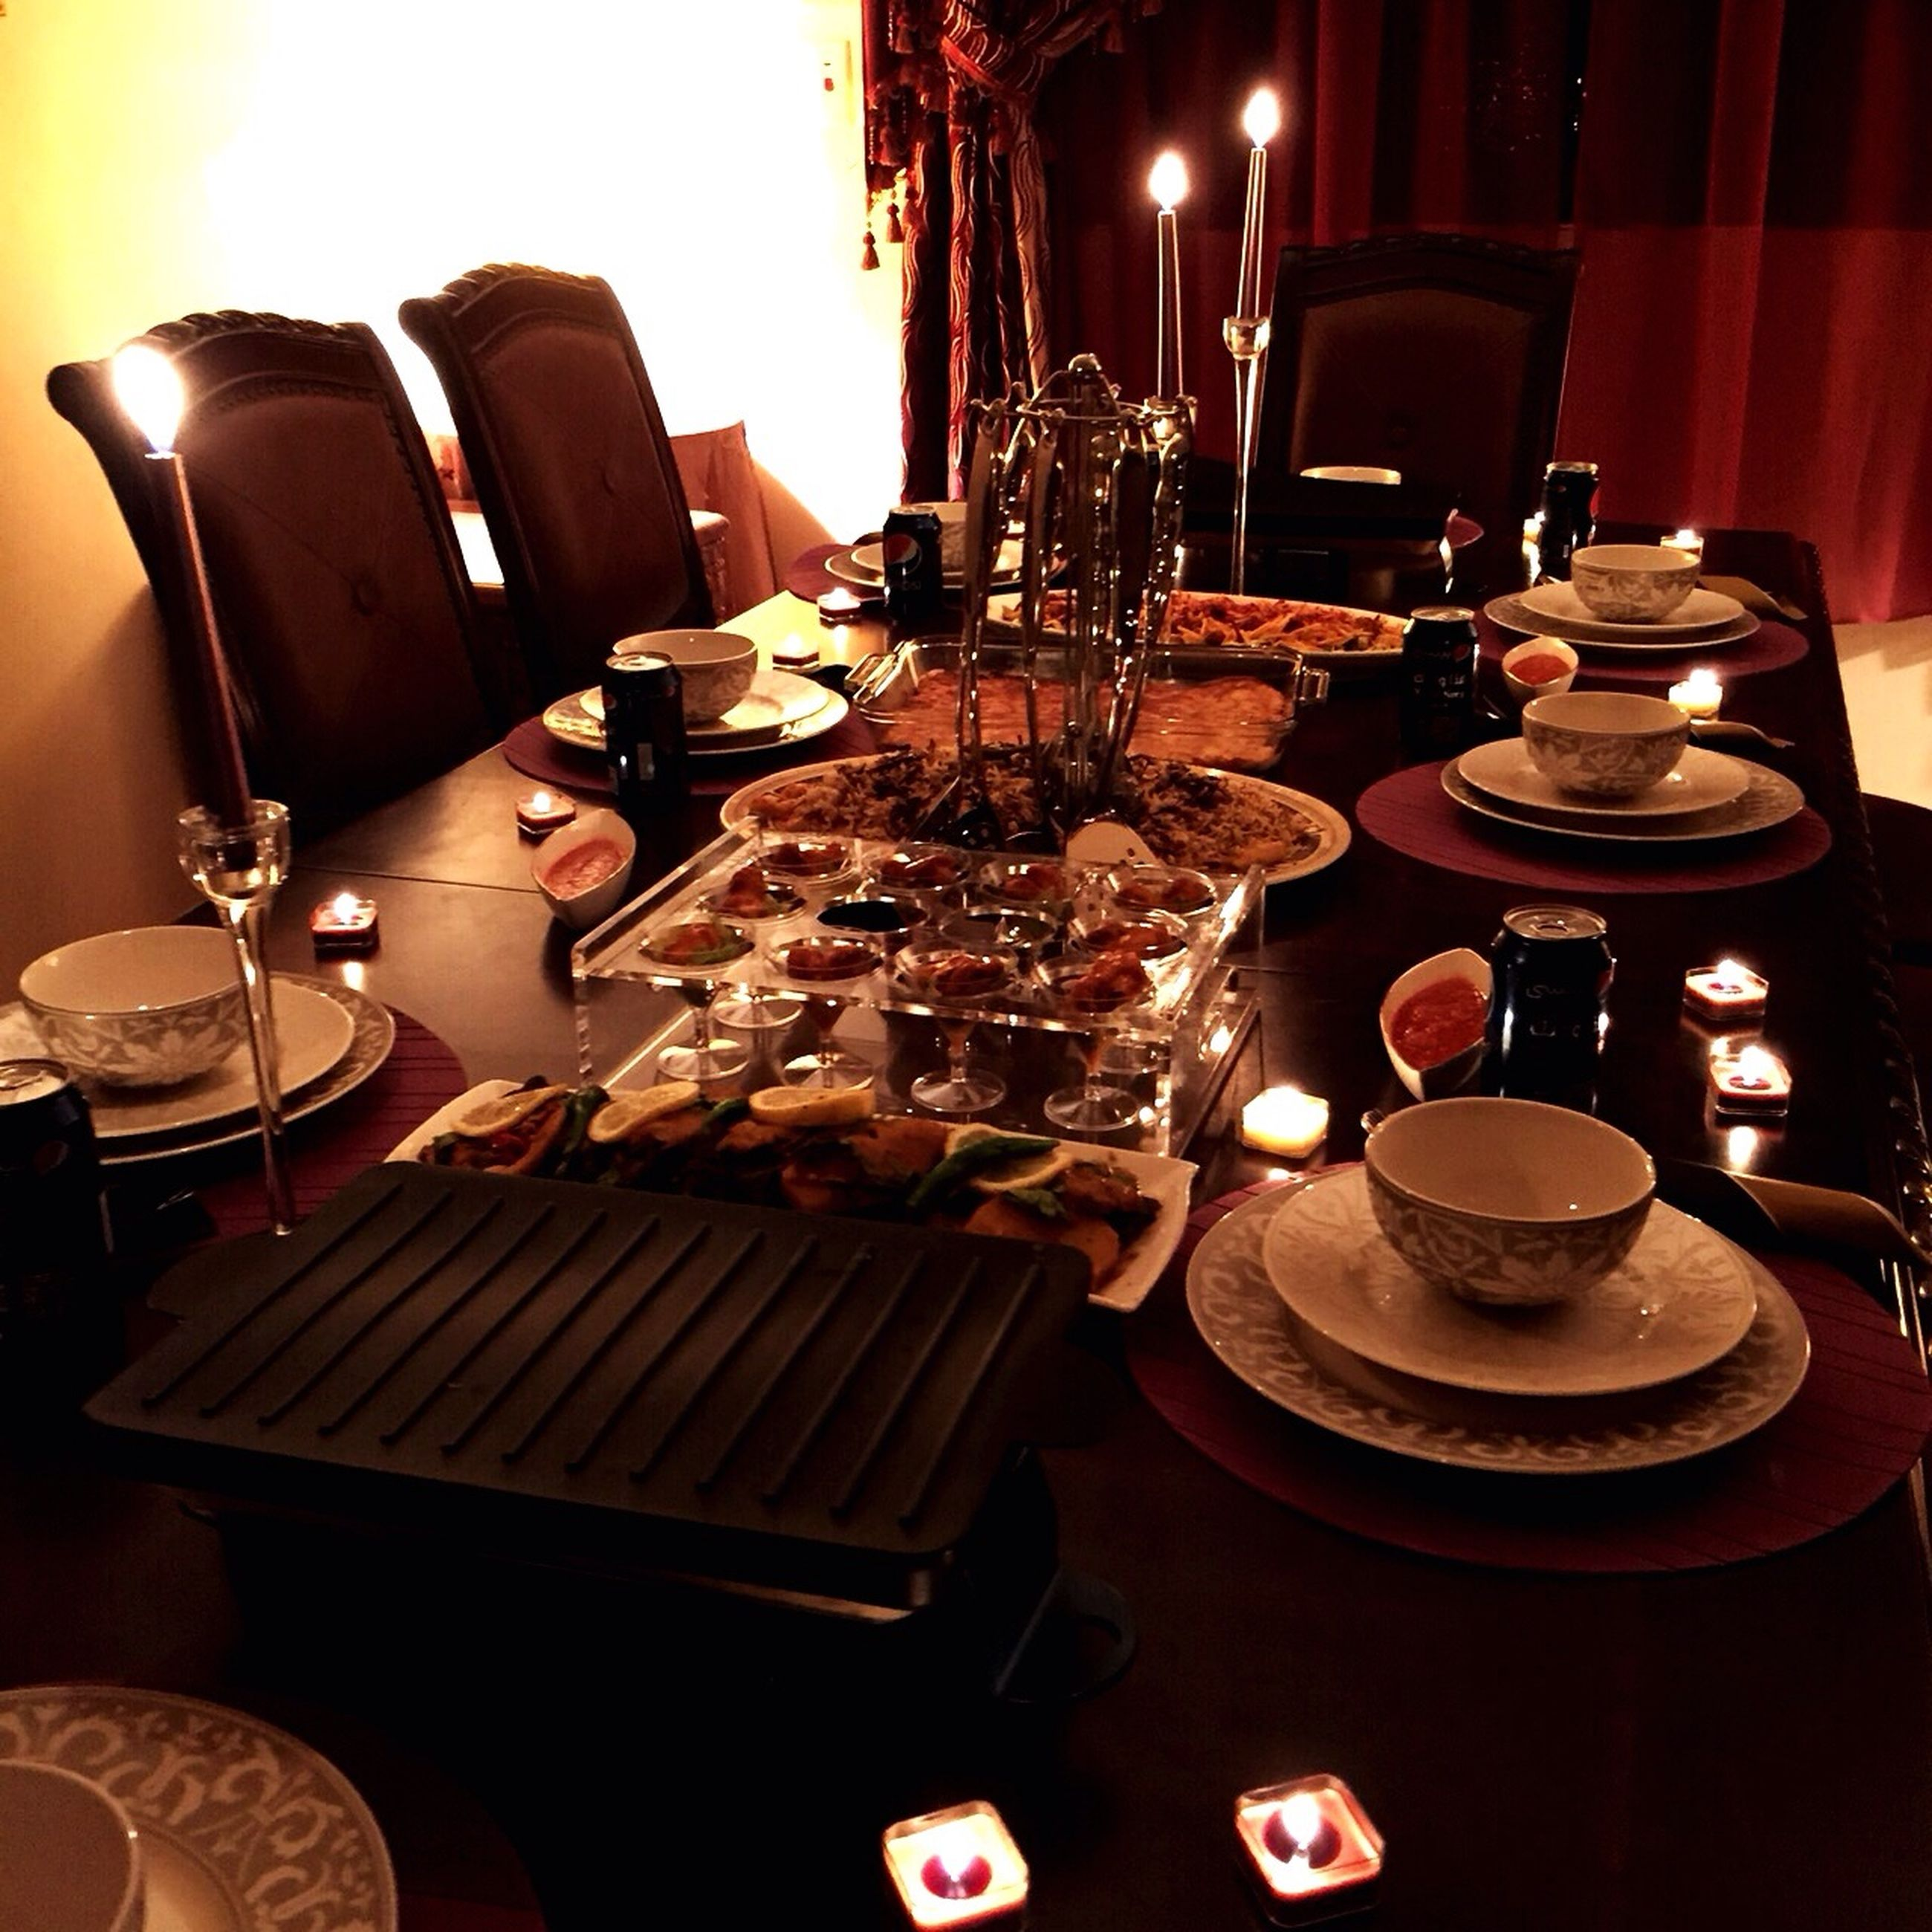 indoors, table, still life, technology, close-up, illuminated, home interior, no people, old-fashioned, focus on foreground, lighting equipment, candle, electricity, retro styled, antique, electric lamp, large group of objects, high angle view, food and drink, music